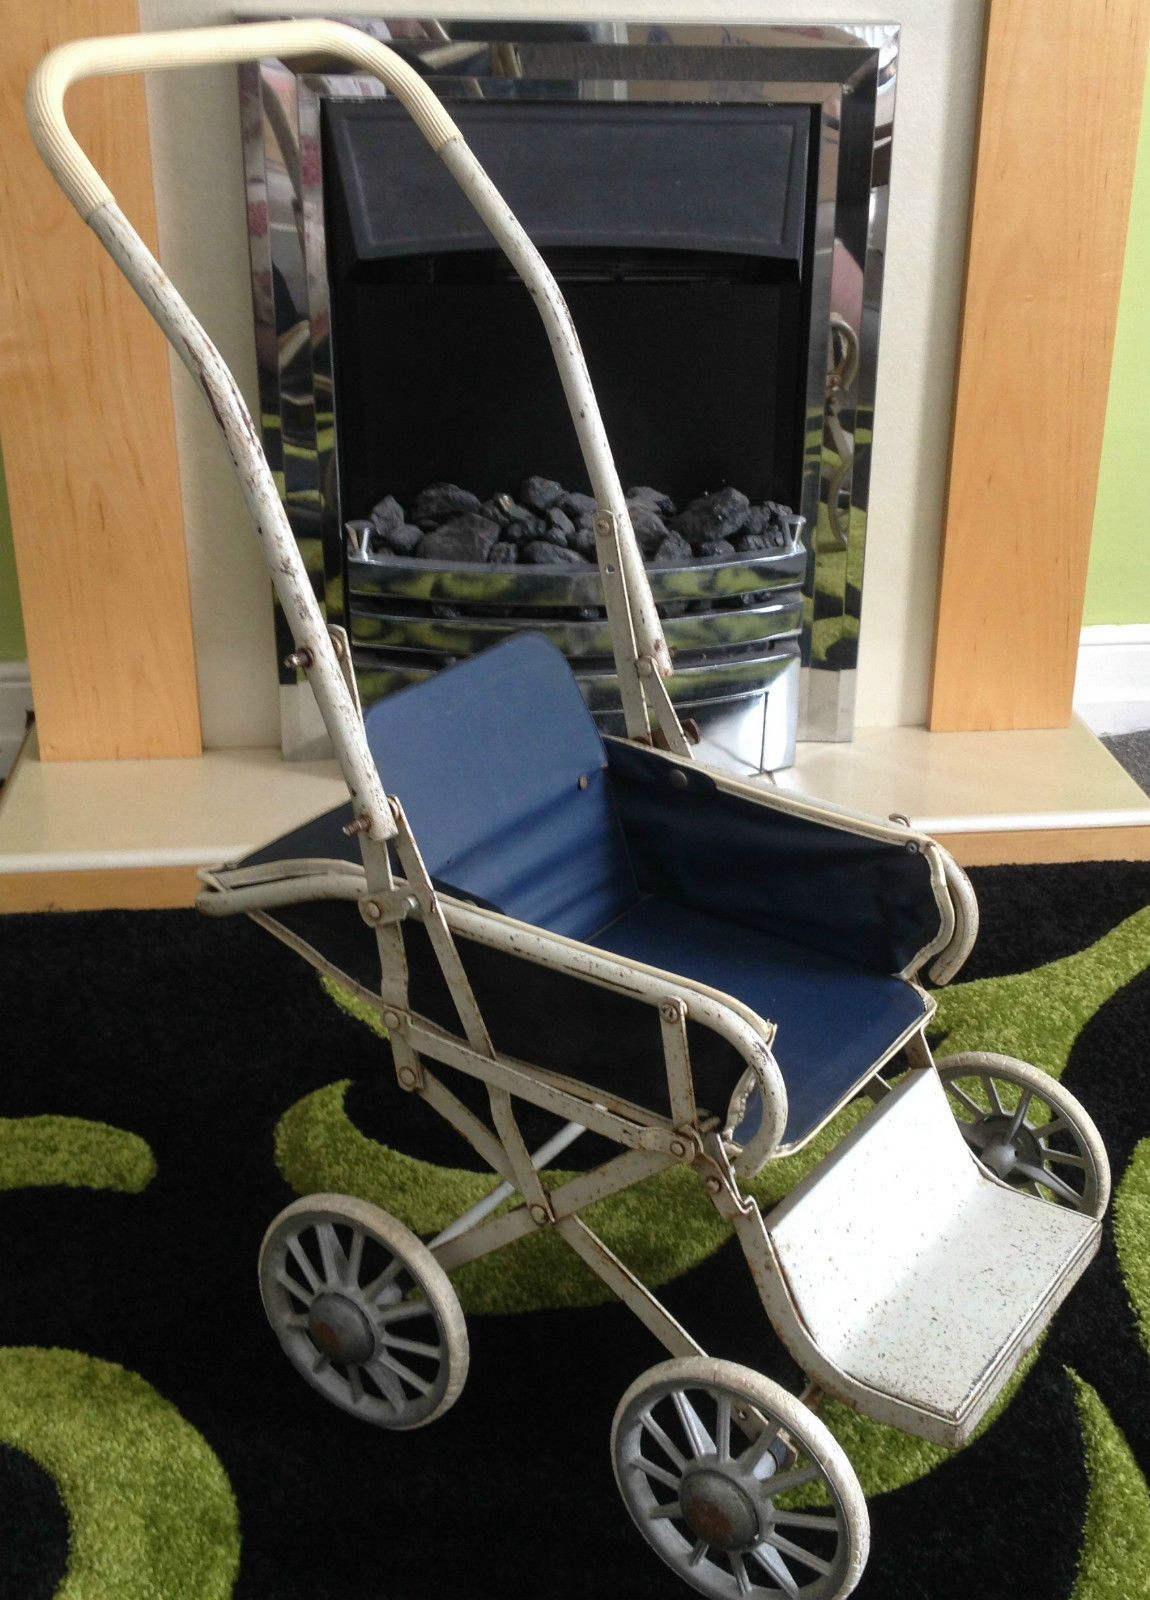 Cumfifolda 1950's Collectable Vintage Doll's Pushchair